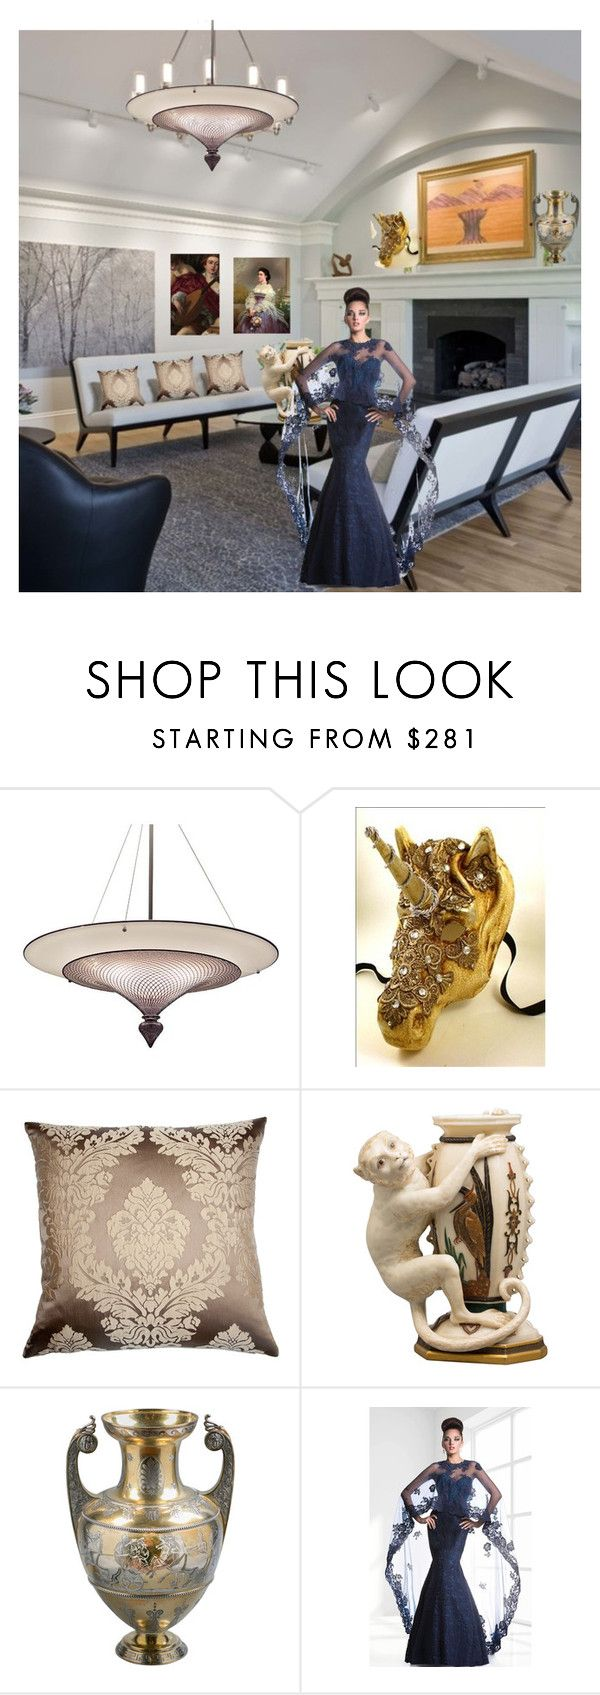 """Untitled #397"" by aifosbr ❤ liked on Polyvore featuring interior, interiors, interior design, home, home decor, interior decorating, Squarefeathers, Royal Worcester and Janique"